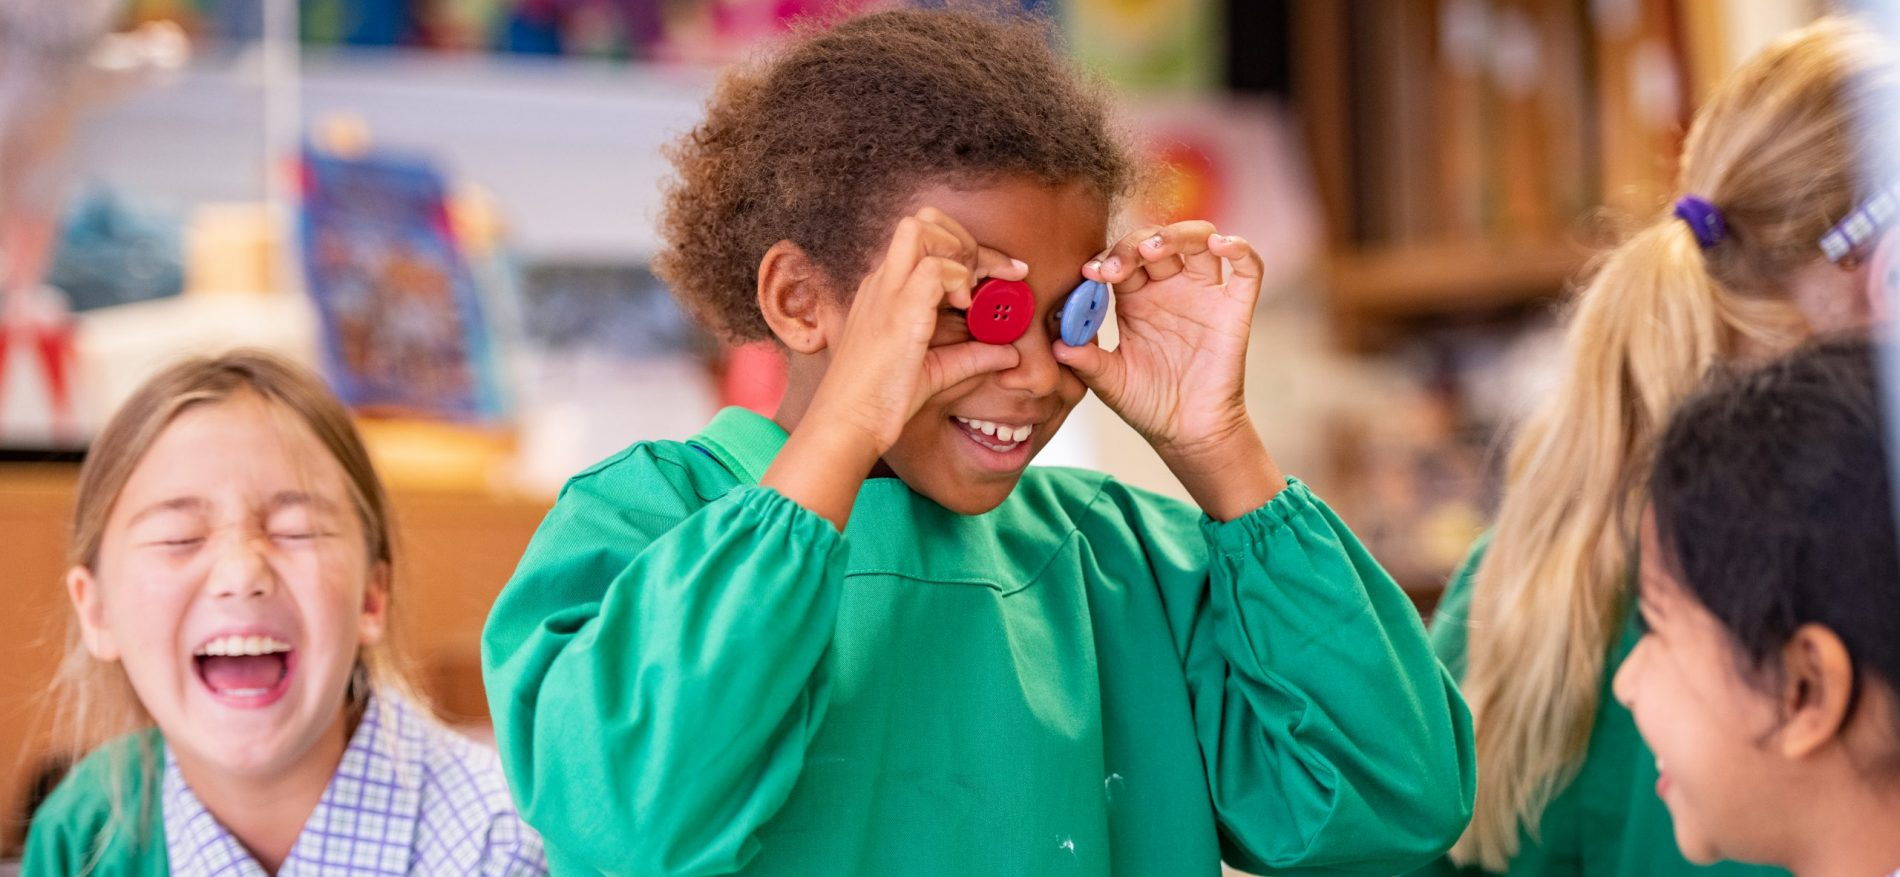 4 school children are in class - one girl has placed buttons over her eyes much to the joy of the other students